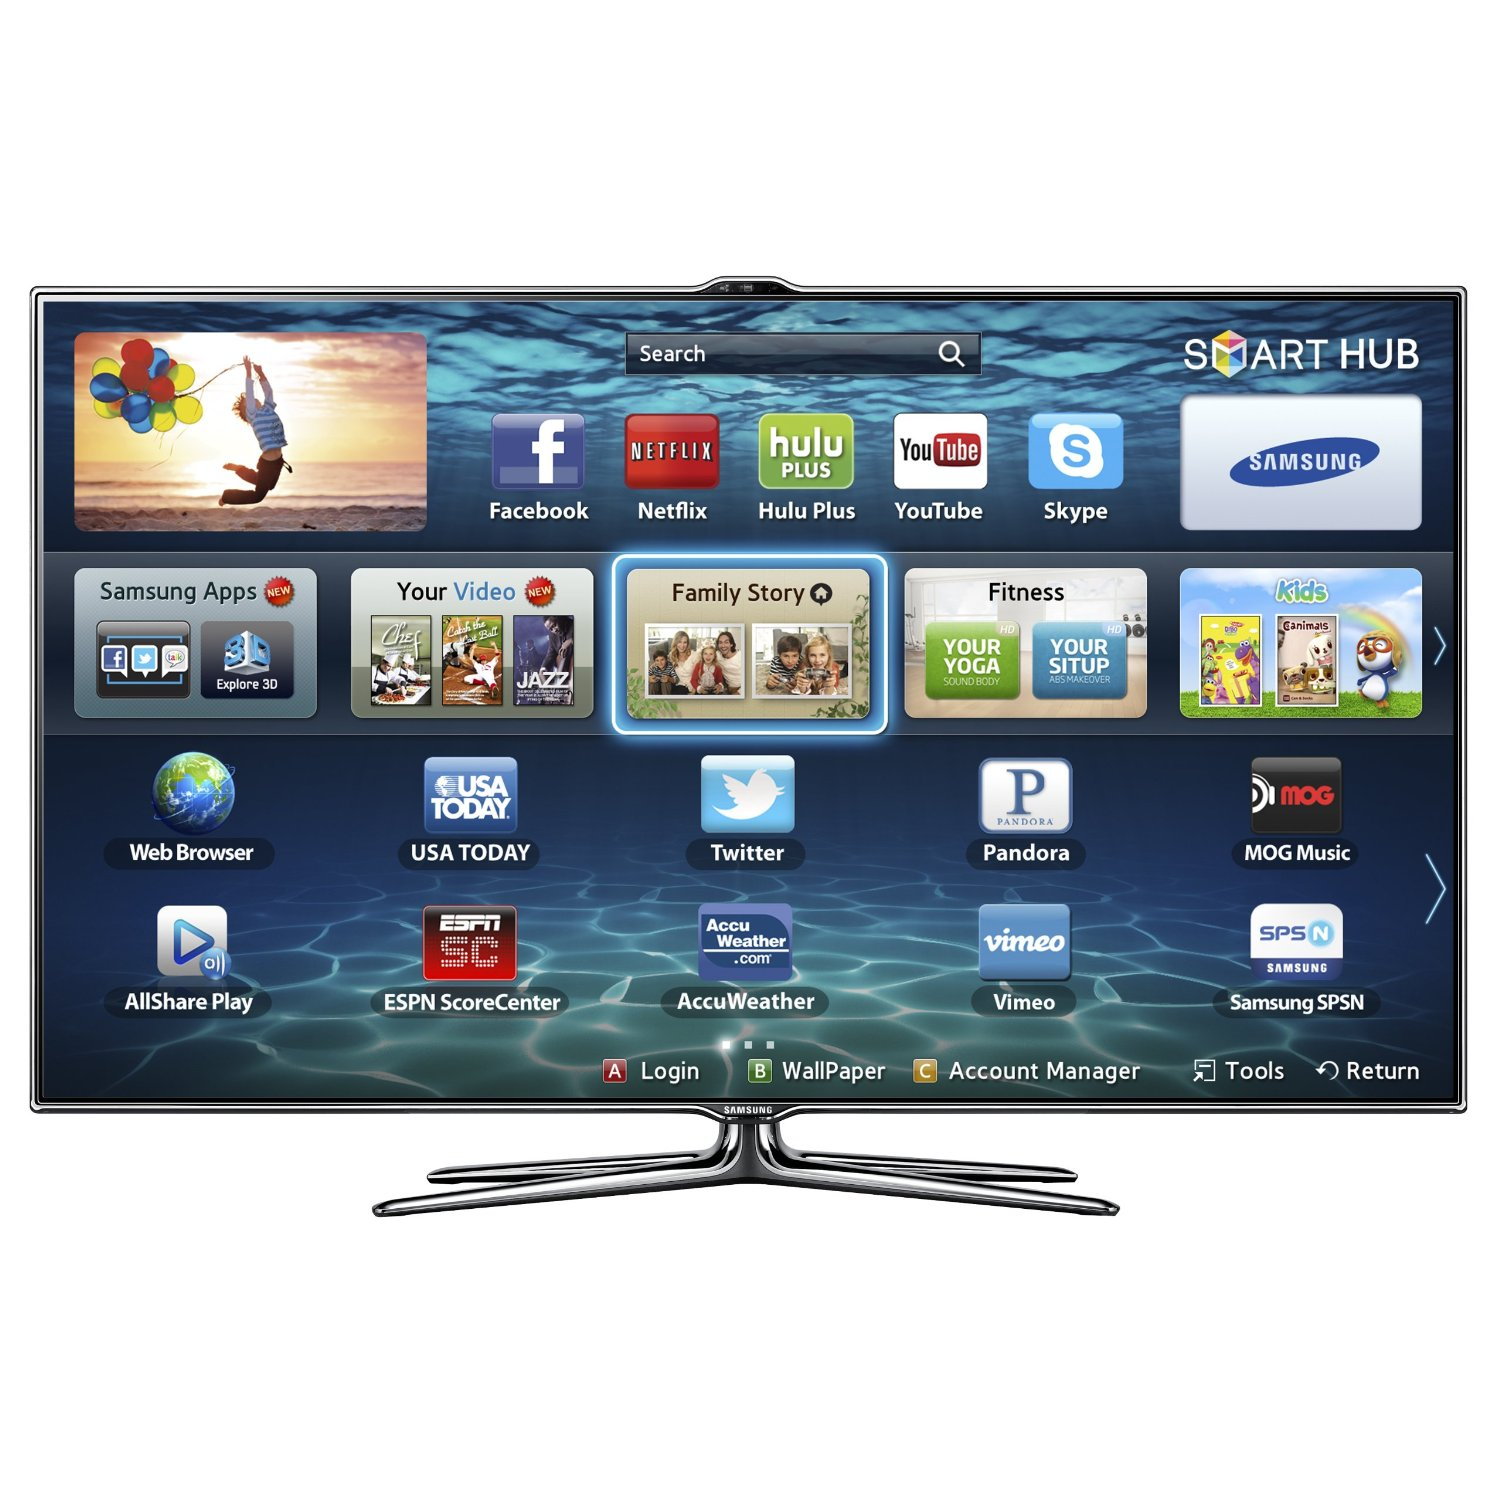 Samsung Smart Led Tv : The Samsung 46 Inch Smart Cinema 3D LED TV UN46ES7500